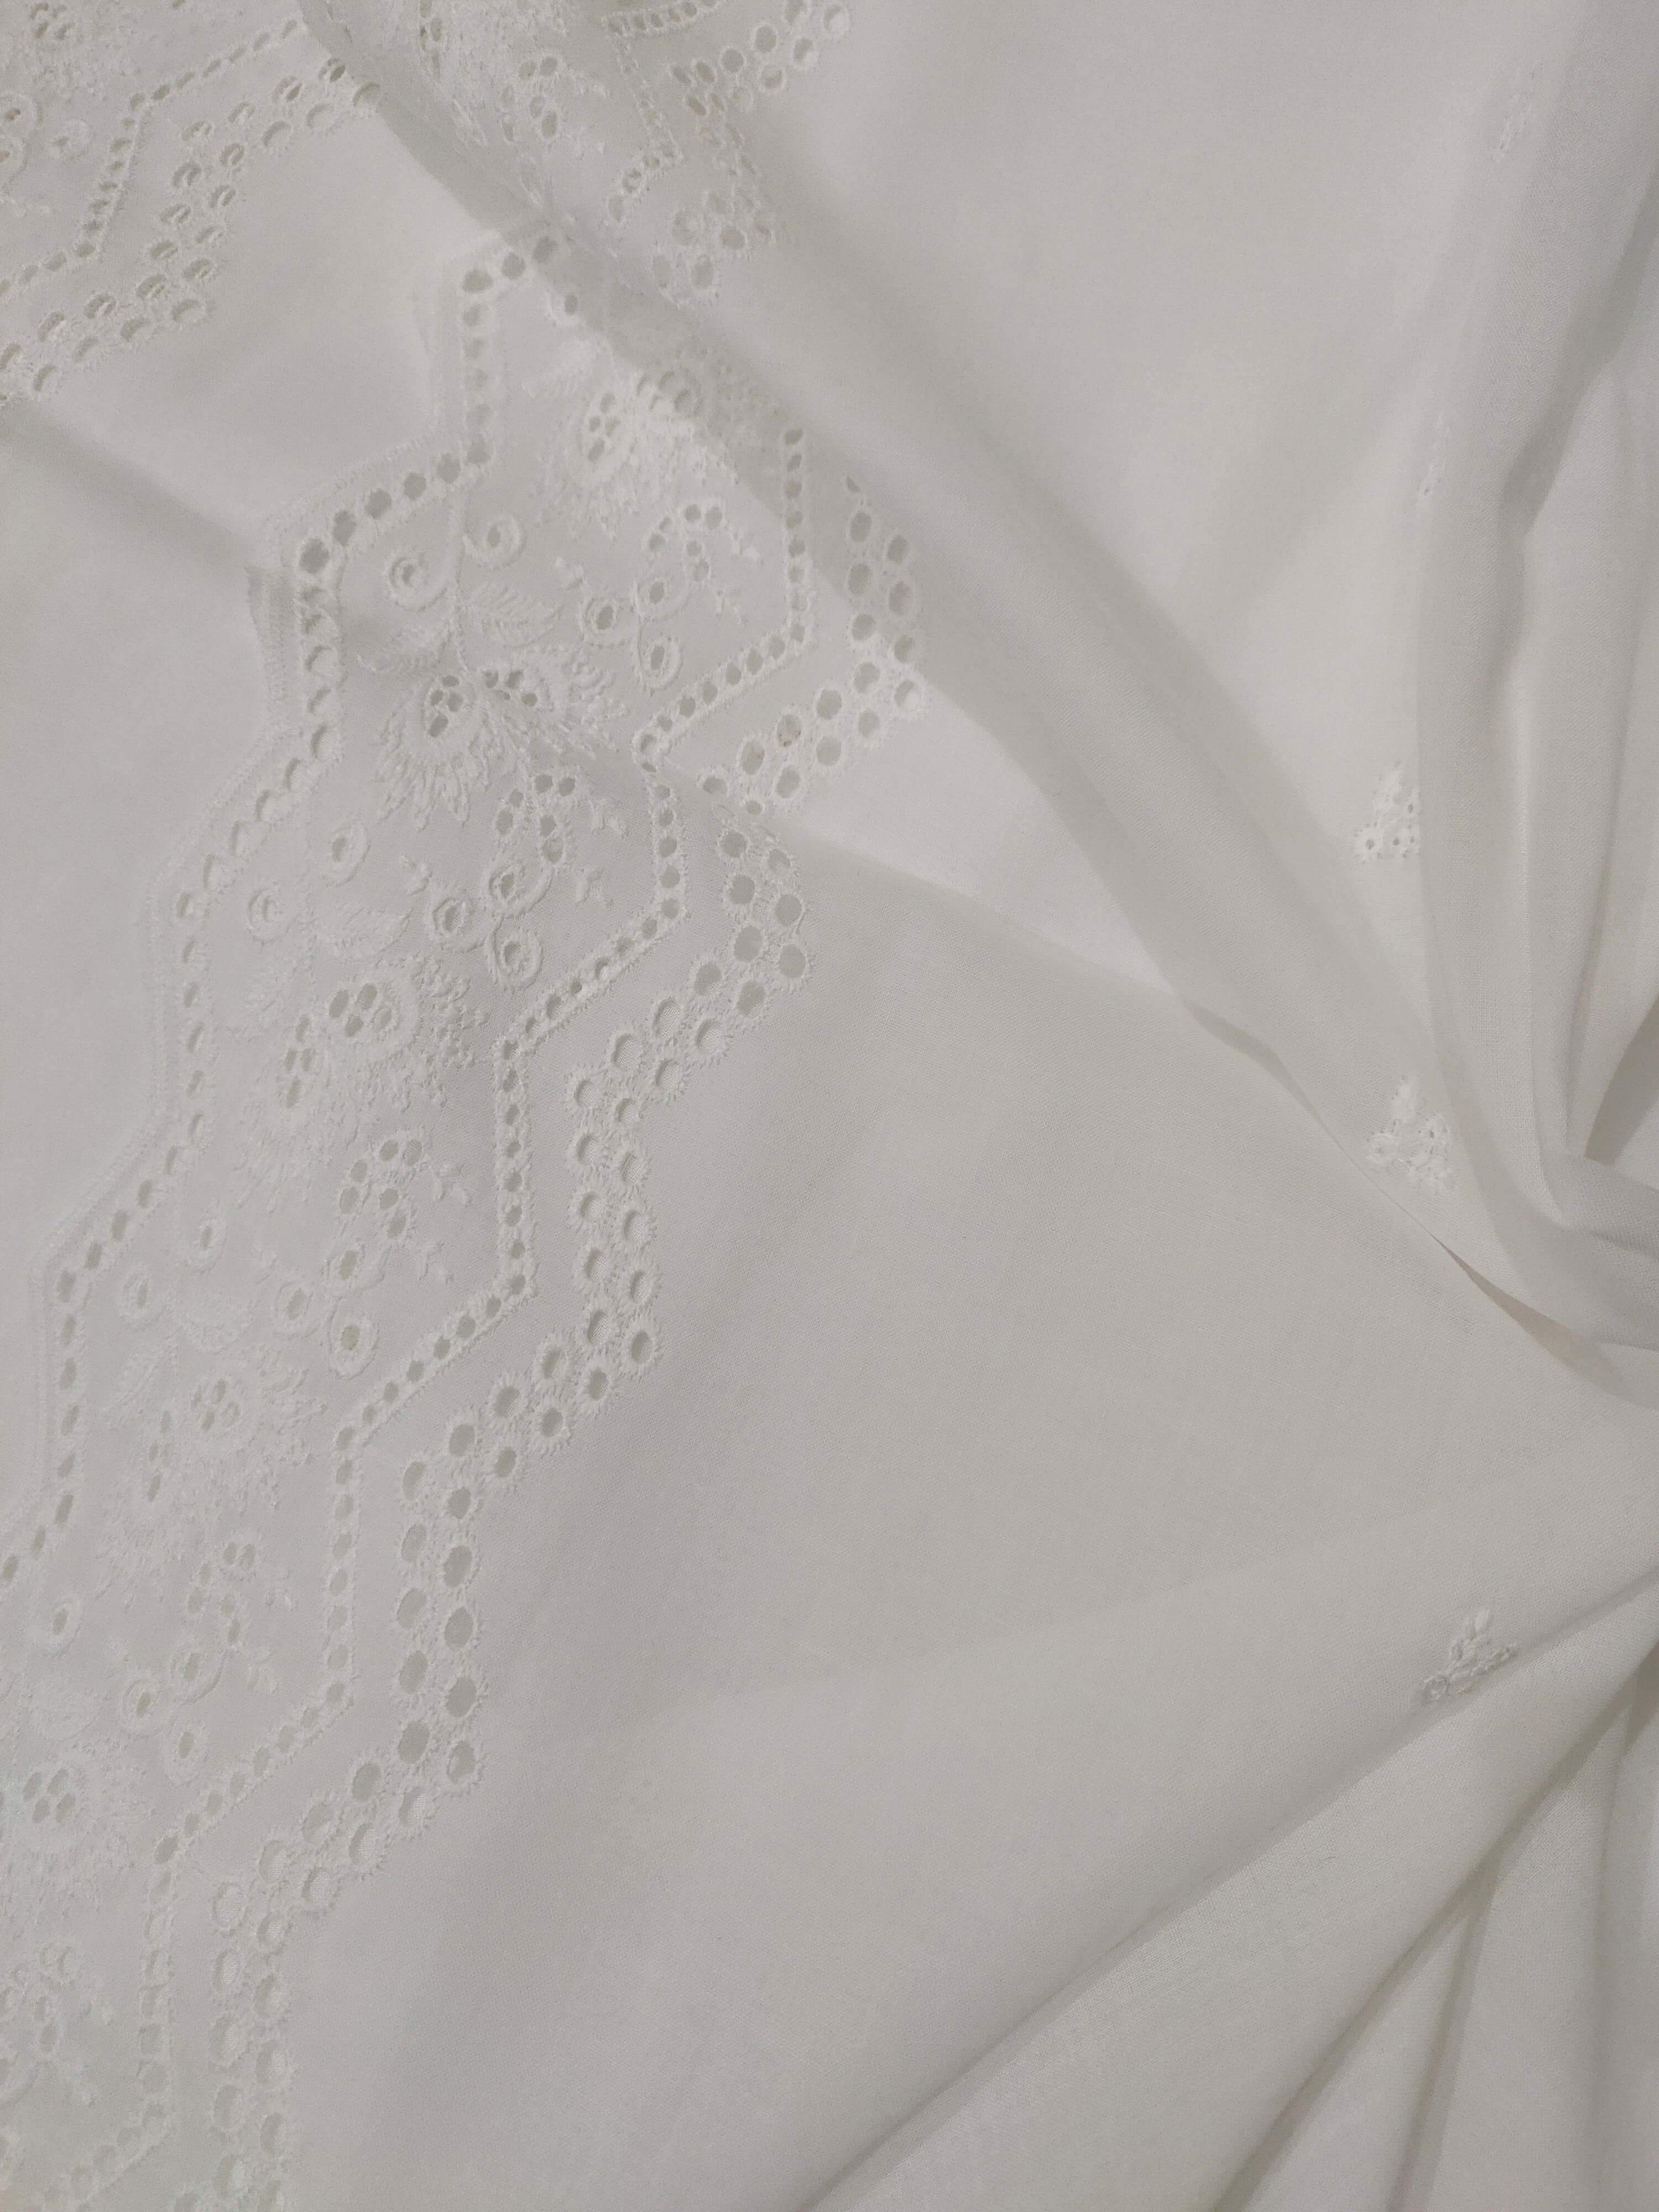 White Chikankari Embroidered Shawl Cotton Lawn Fabric DP-09 - FaisalFabrics.pk